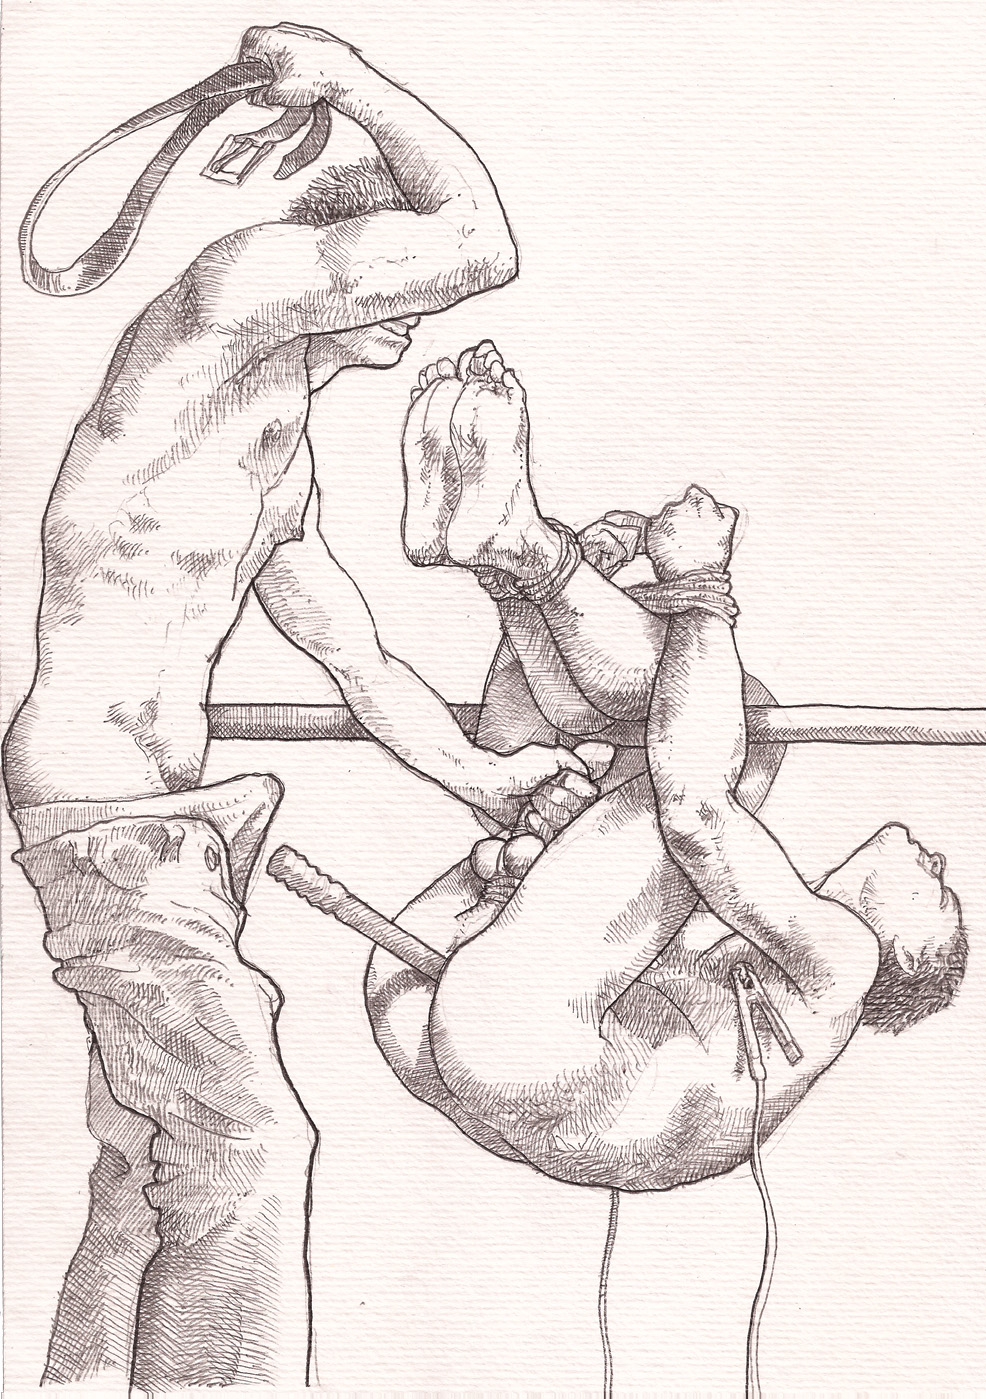 Male bdsm drawings